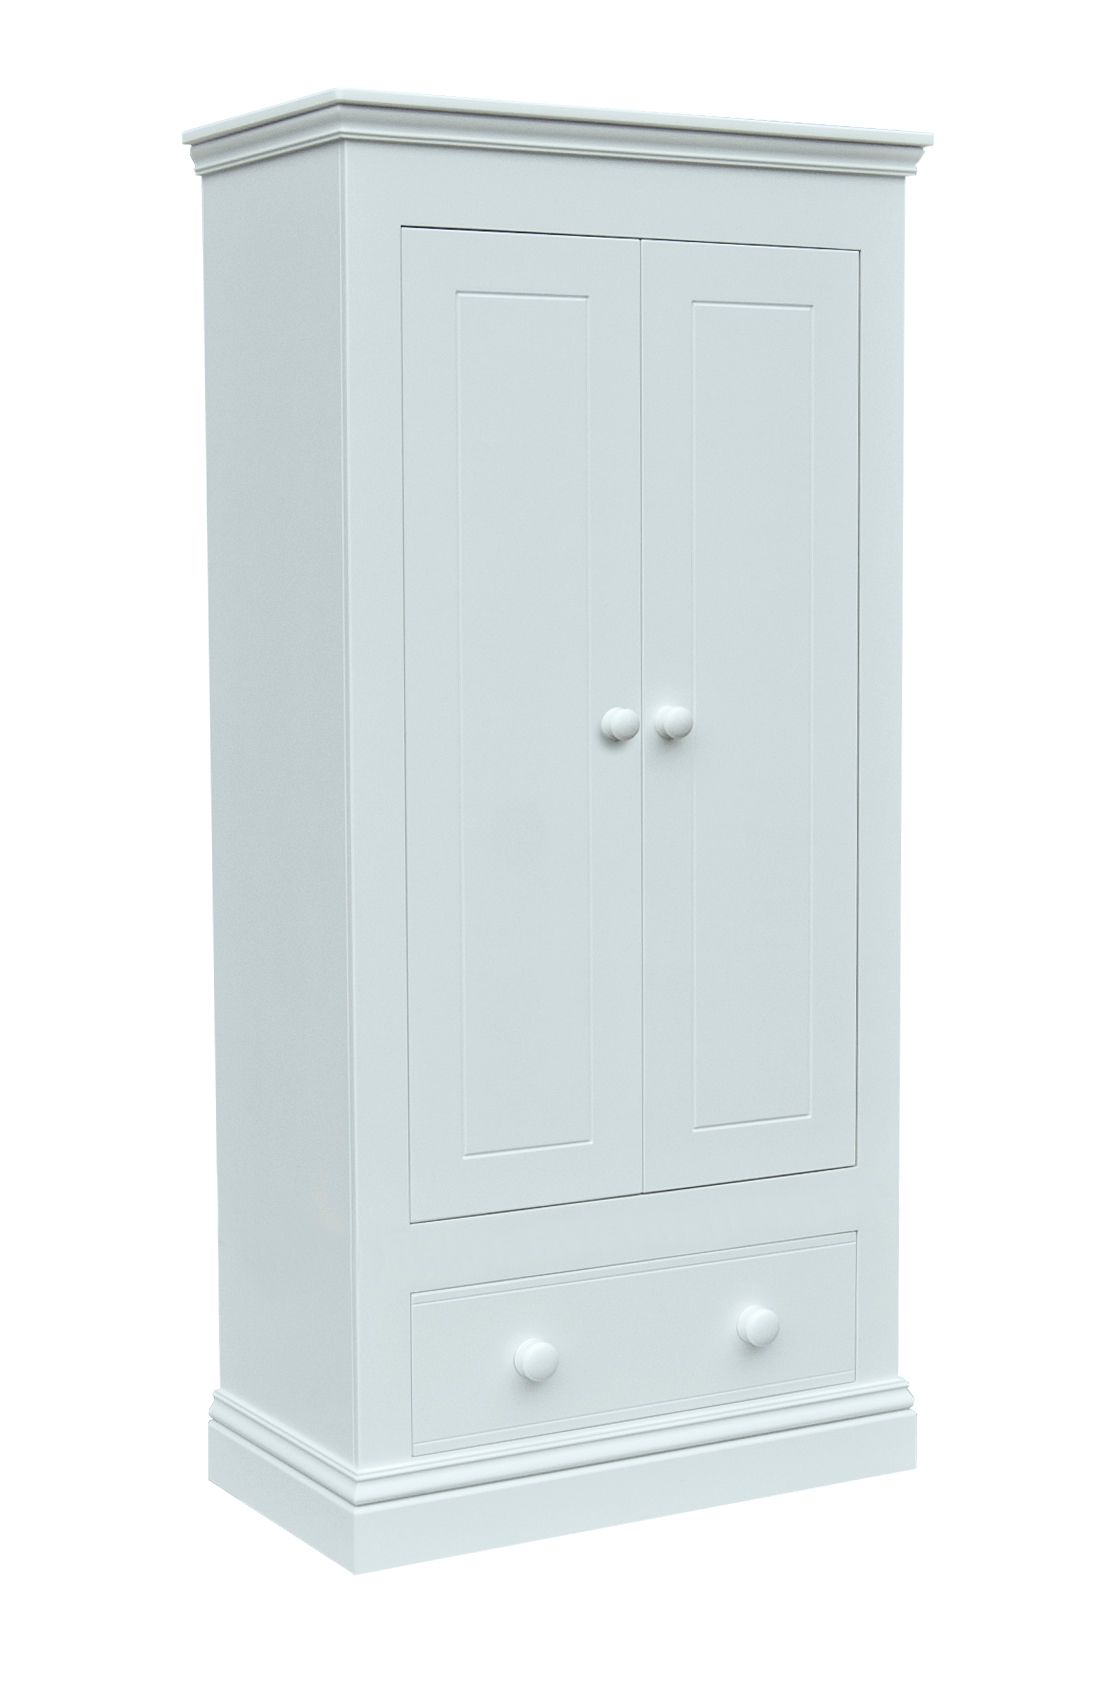 Image of Adorable Tots New Hampton 2 Door Wardrobe with 1 Drawer